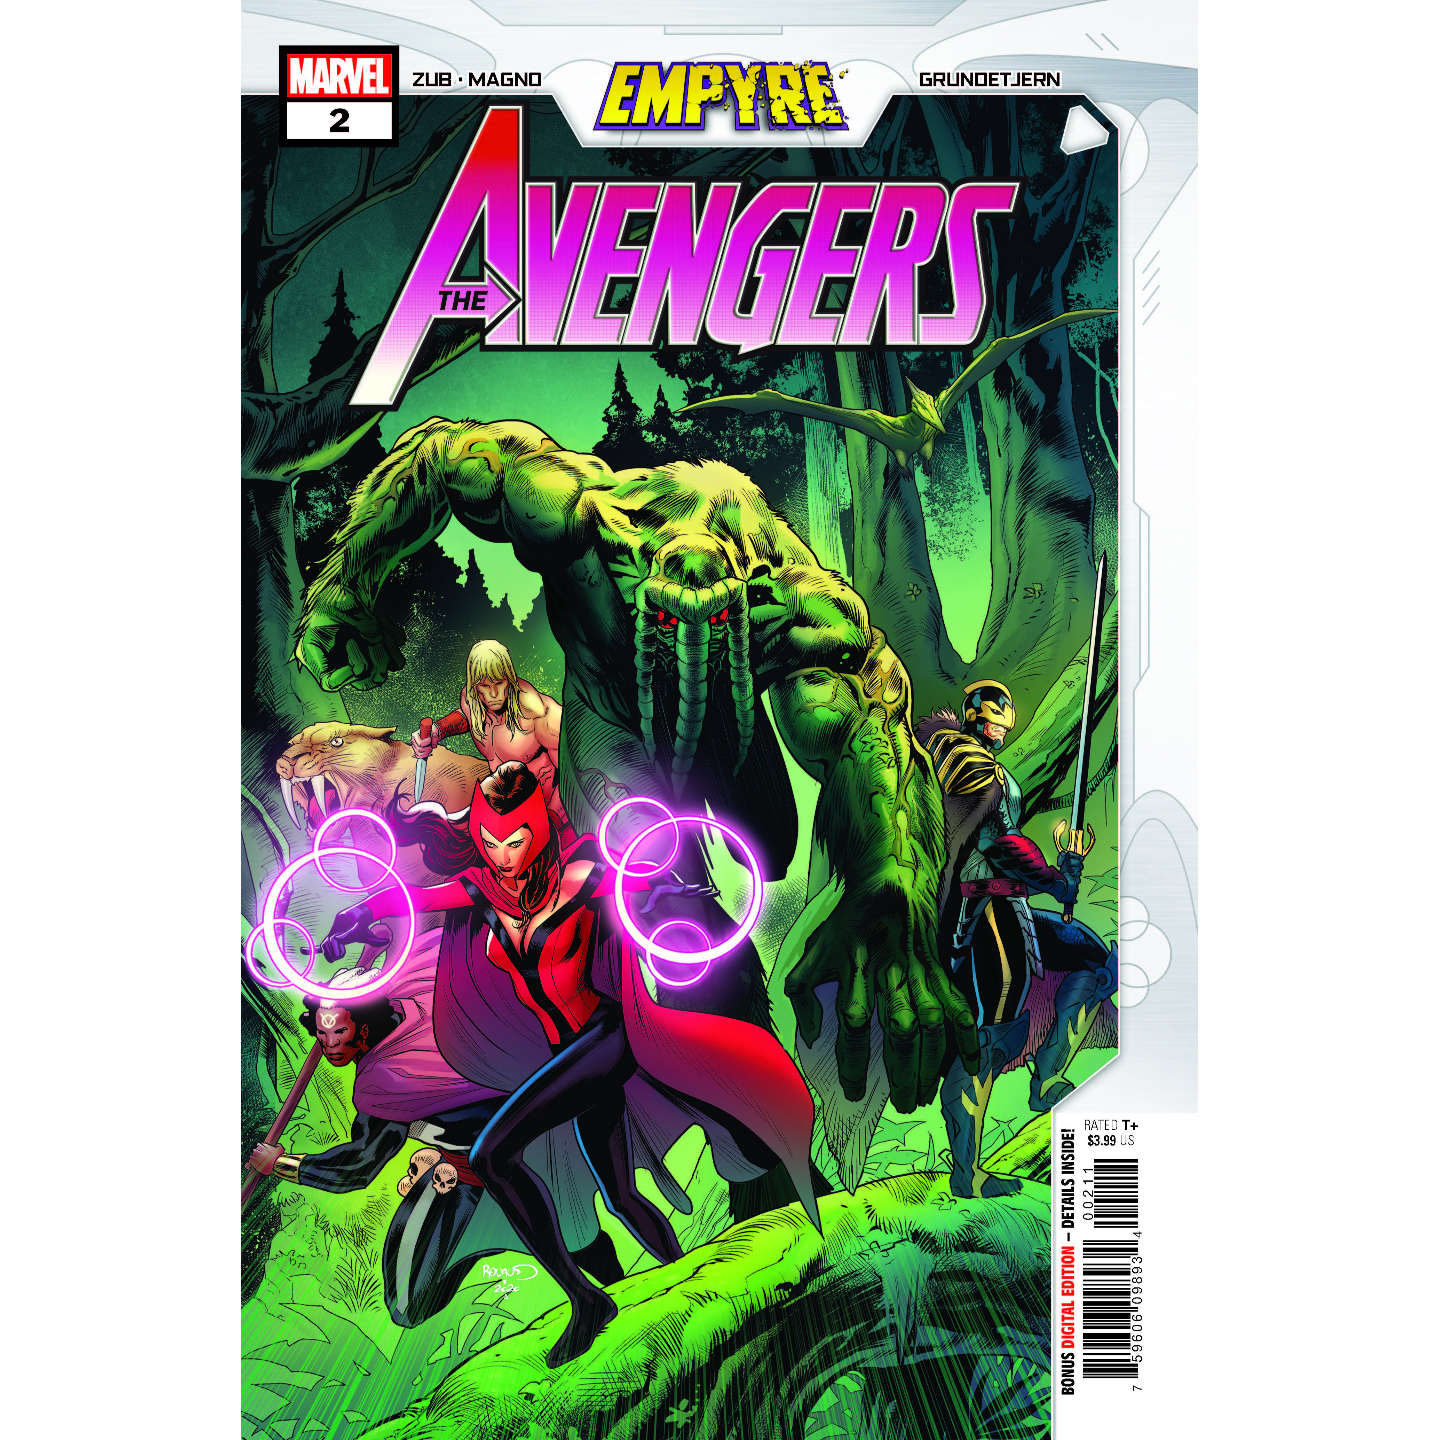 EMPYRE AVENGERS #2 (OF 3)